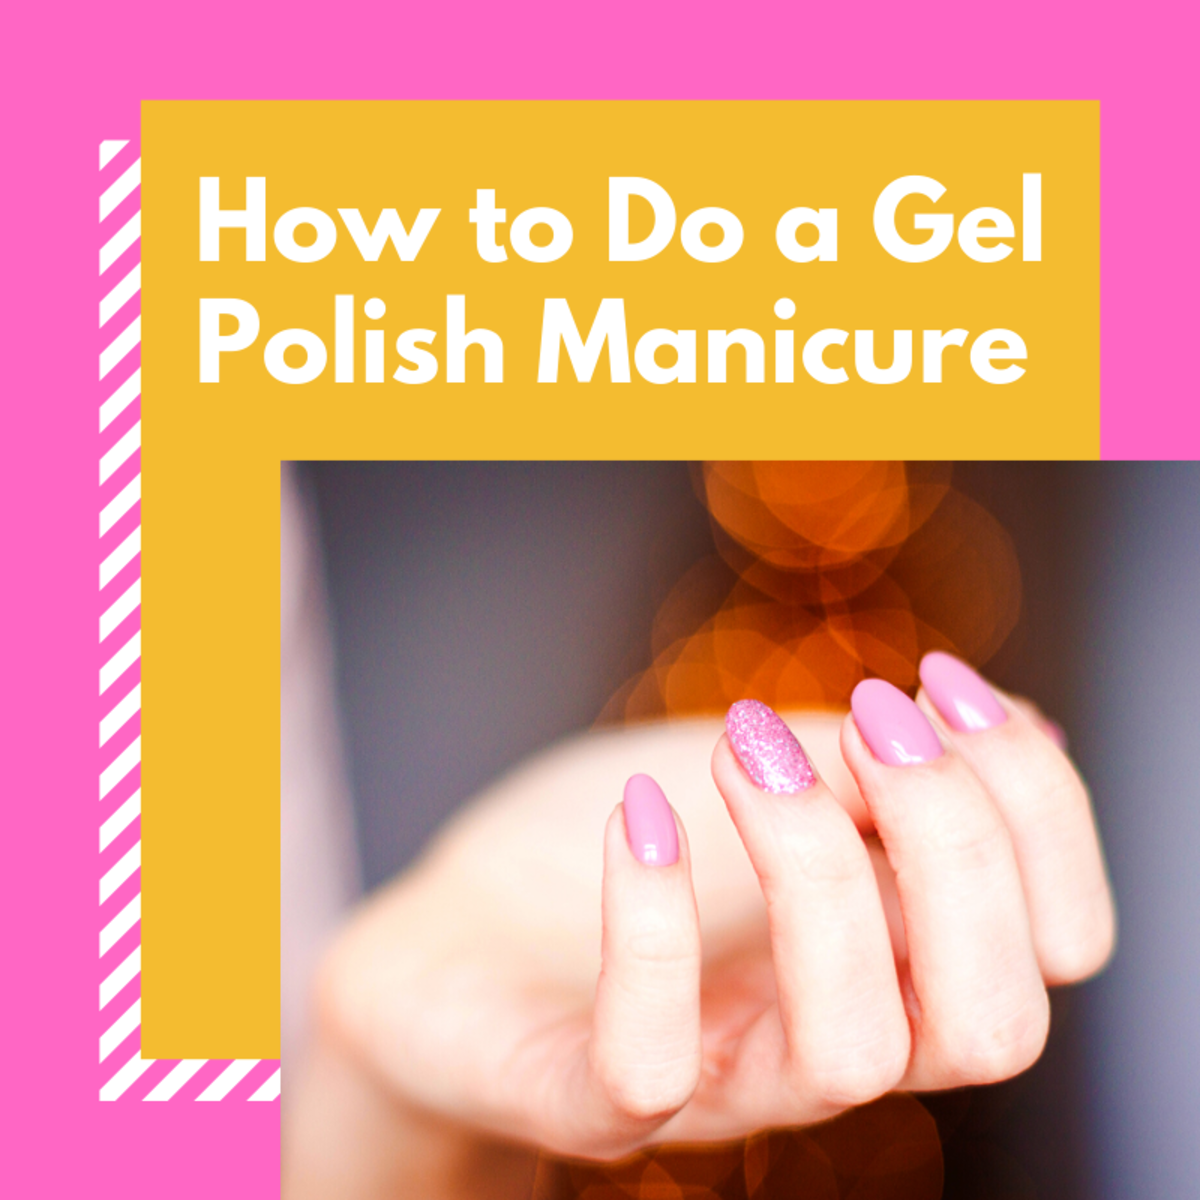 Learn the best tips to save money and give yourself a great manicure.